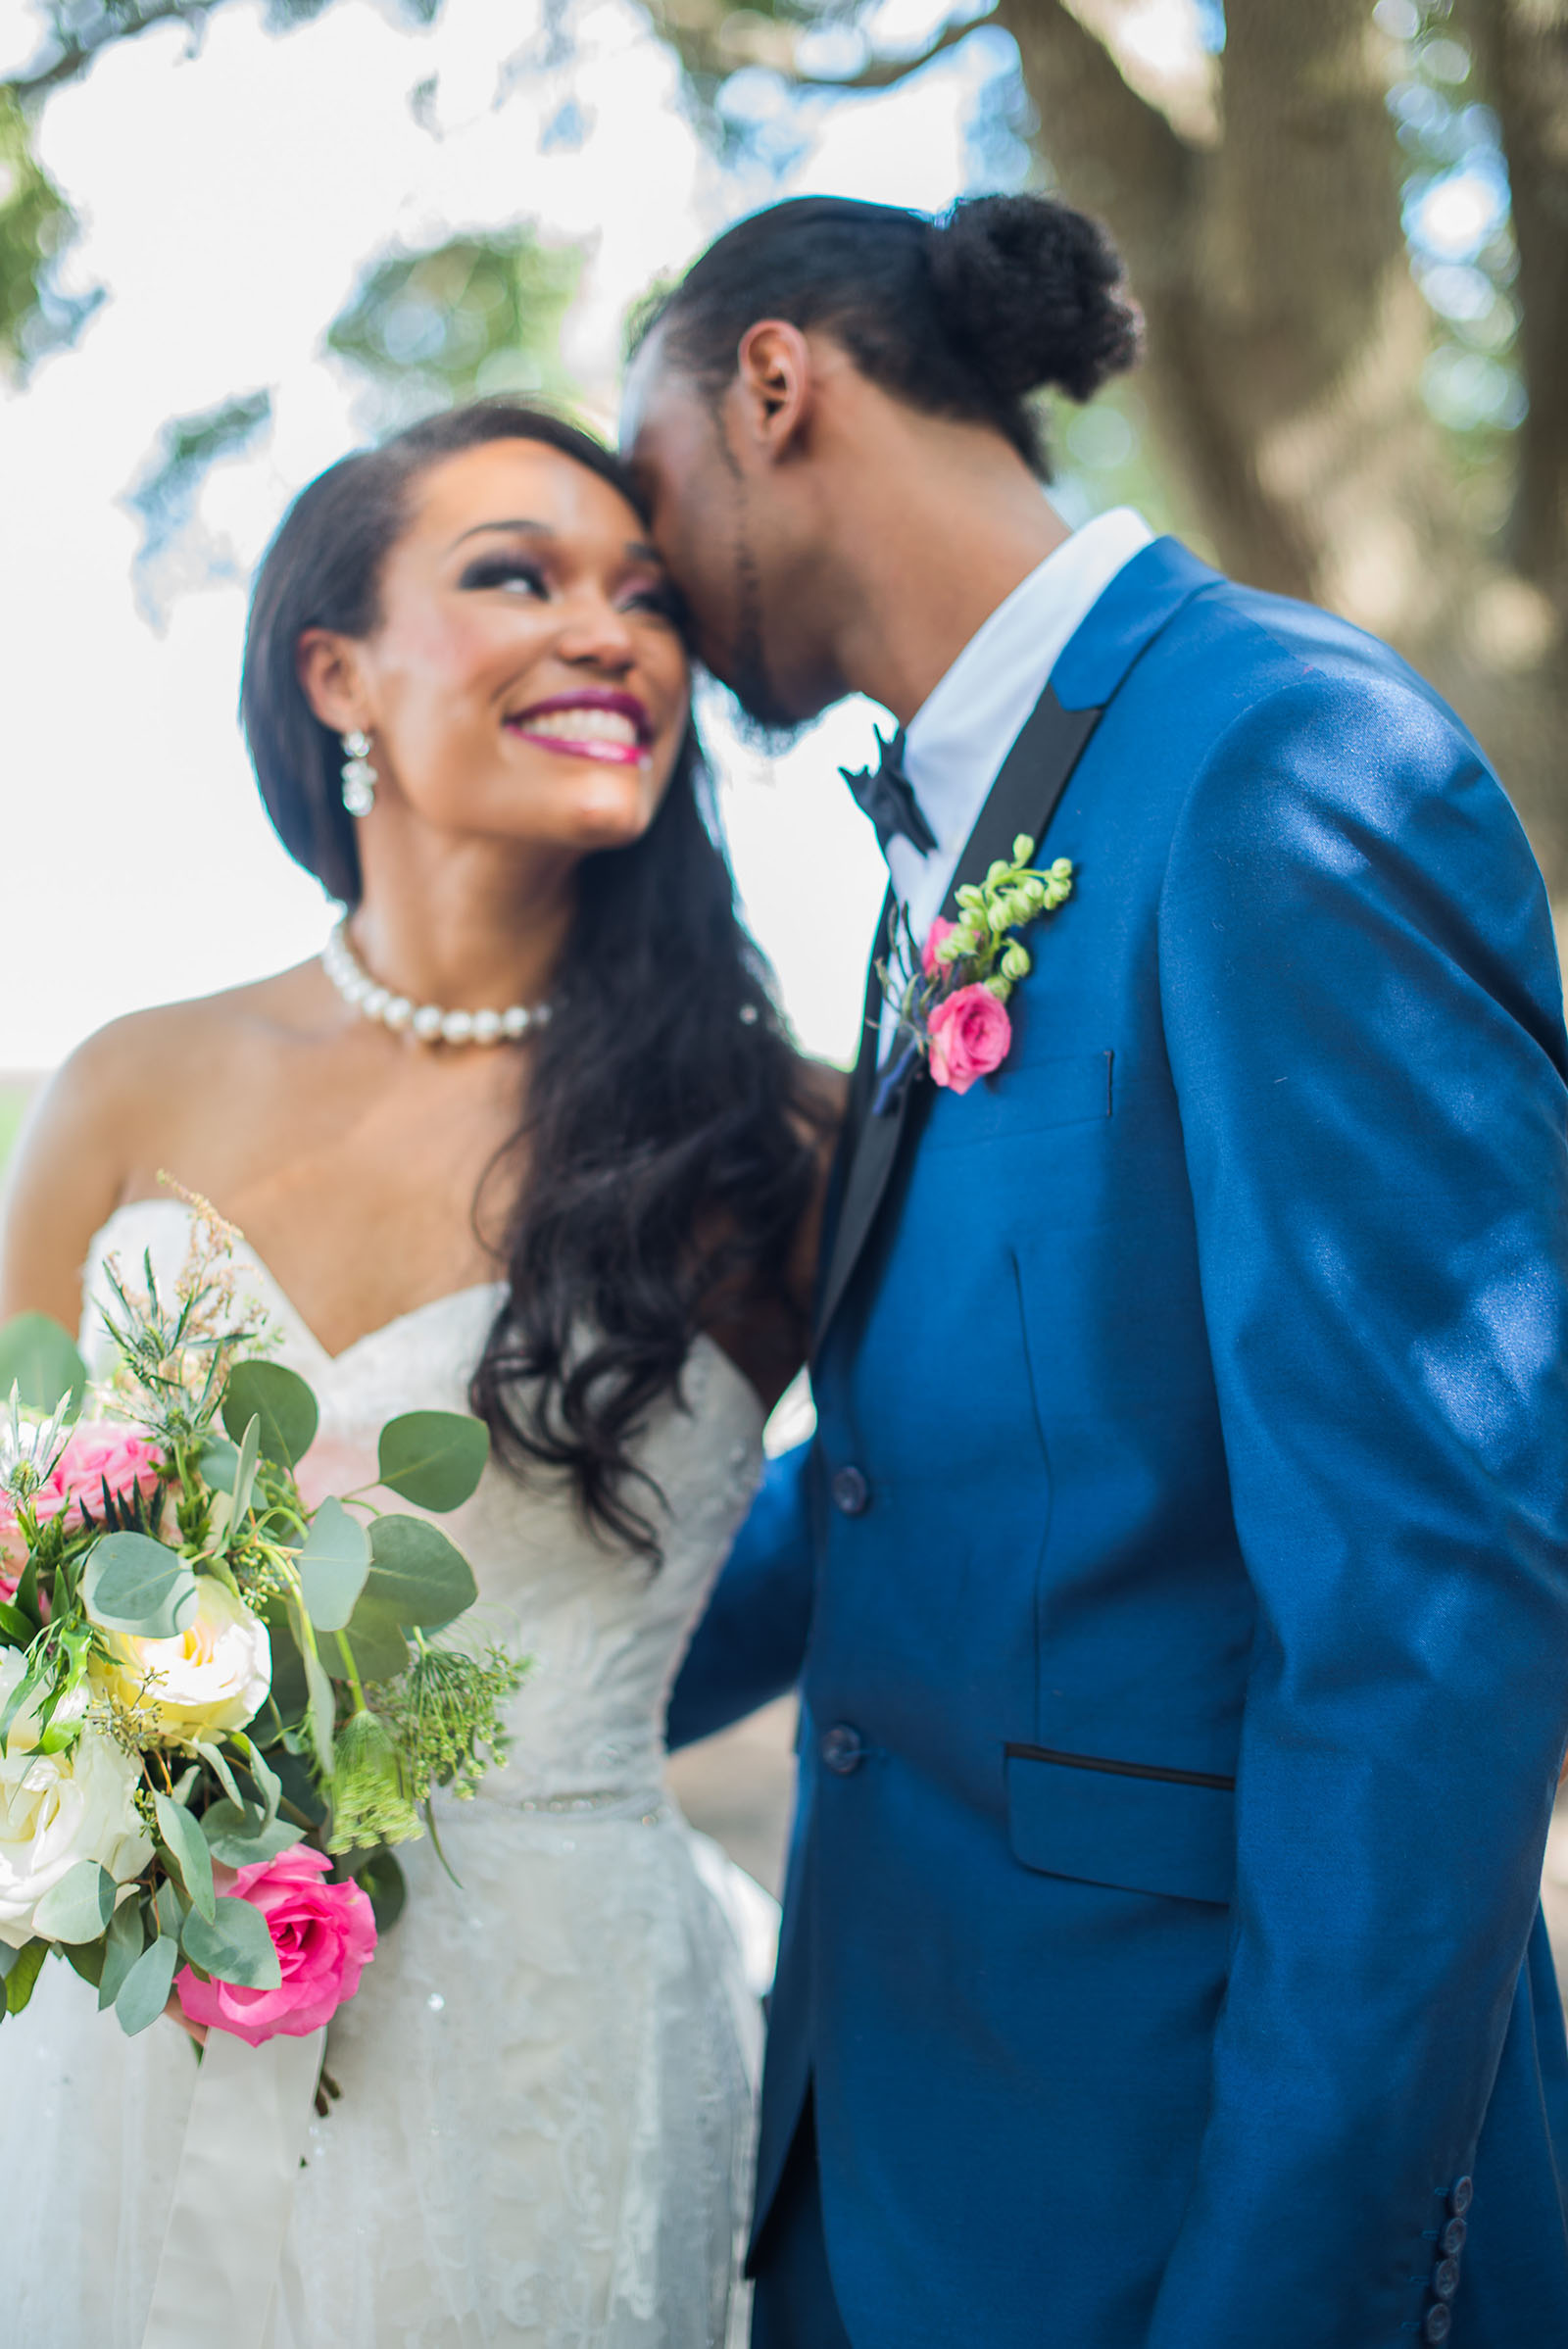 What to Consider When Choosing A Wedding Planner